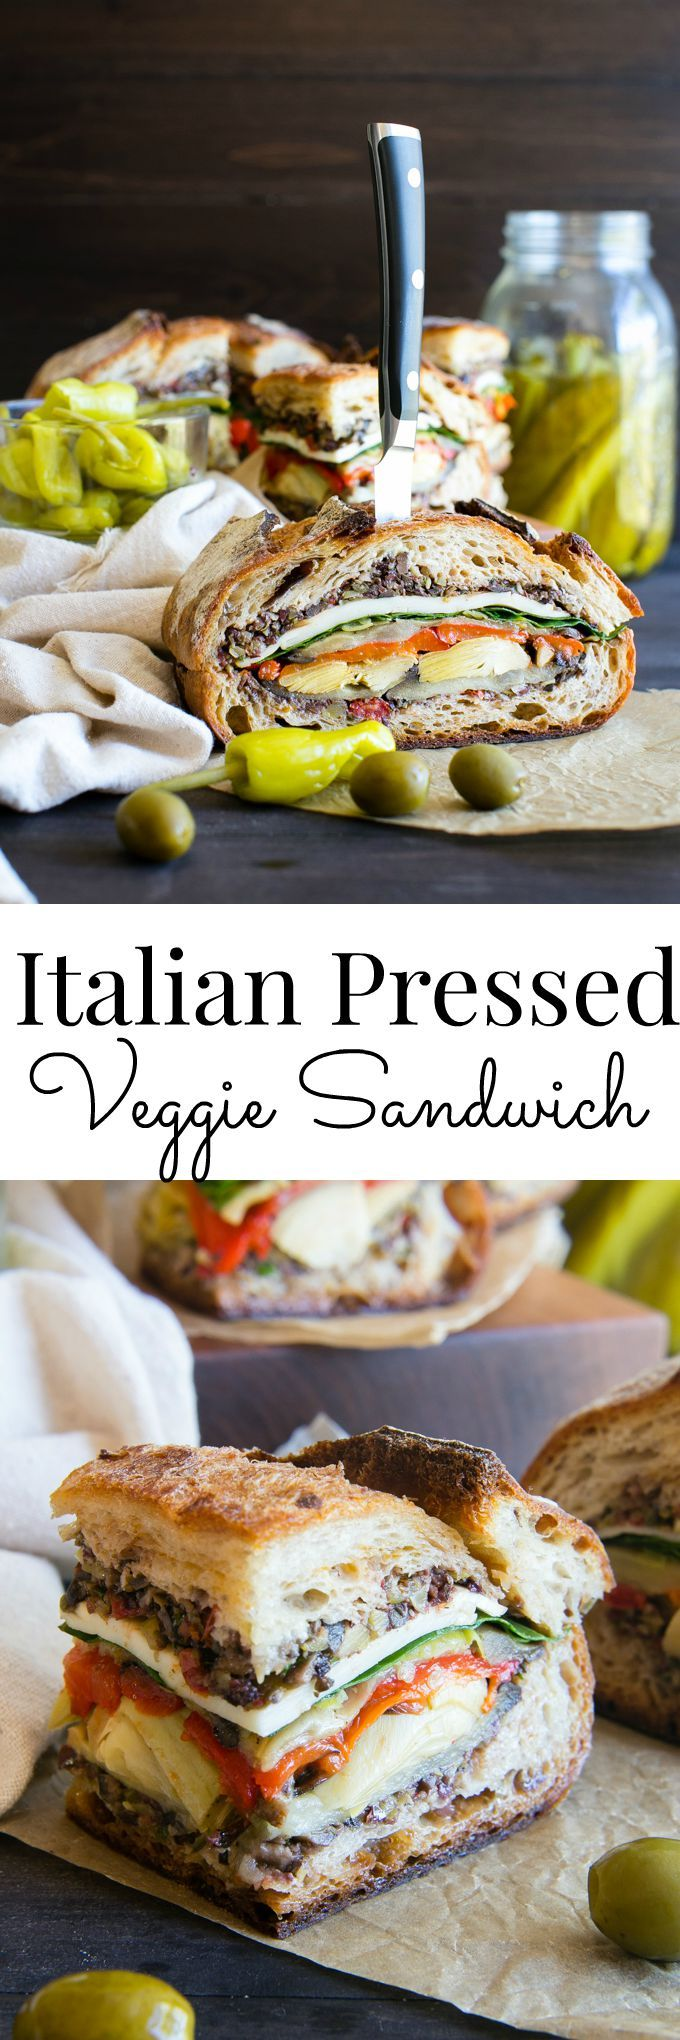 Italian Pressed Sandwich // garlic, red bell peppers, aubergine, red wine vinegar, ciabatta or sourdough, pepperoncini, tinned artichokes, swiss chard or spinach, vegan cheese, sea salt, black pepper, olive oil...TAPENADE // mixed olives eg black or kalamata or green, capers, sundried tomatoes, garlic, dried oregano, fresh parsley, fresh basil, lemon